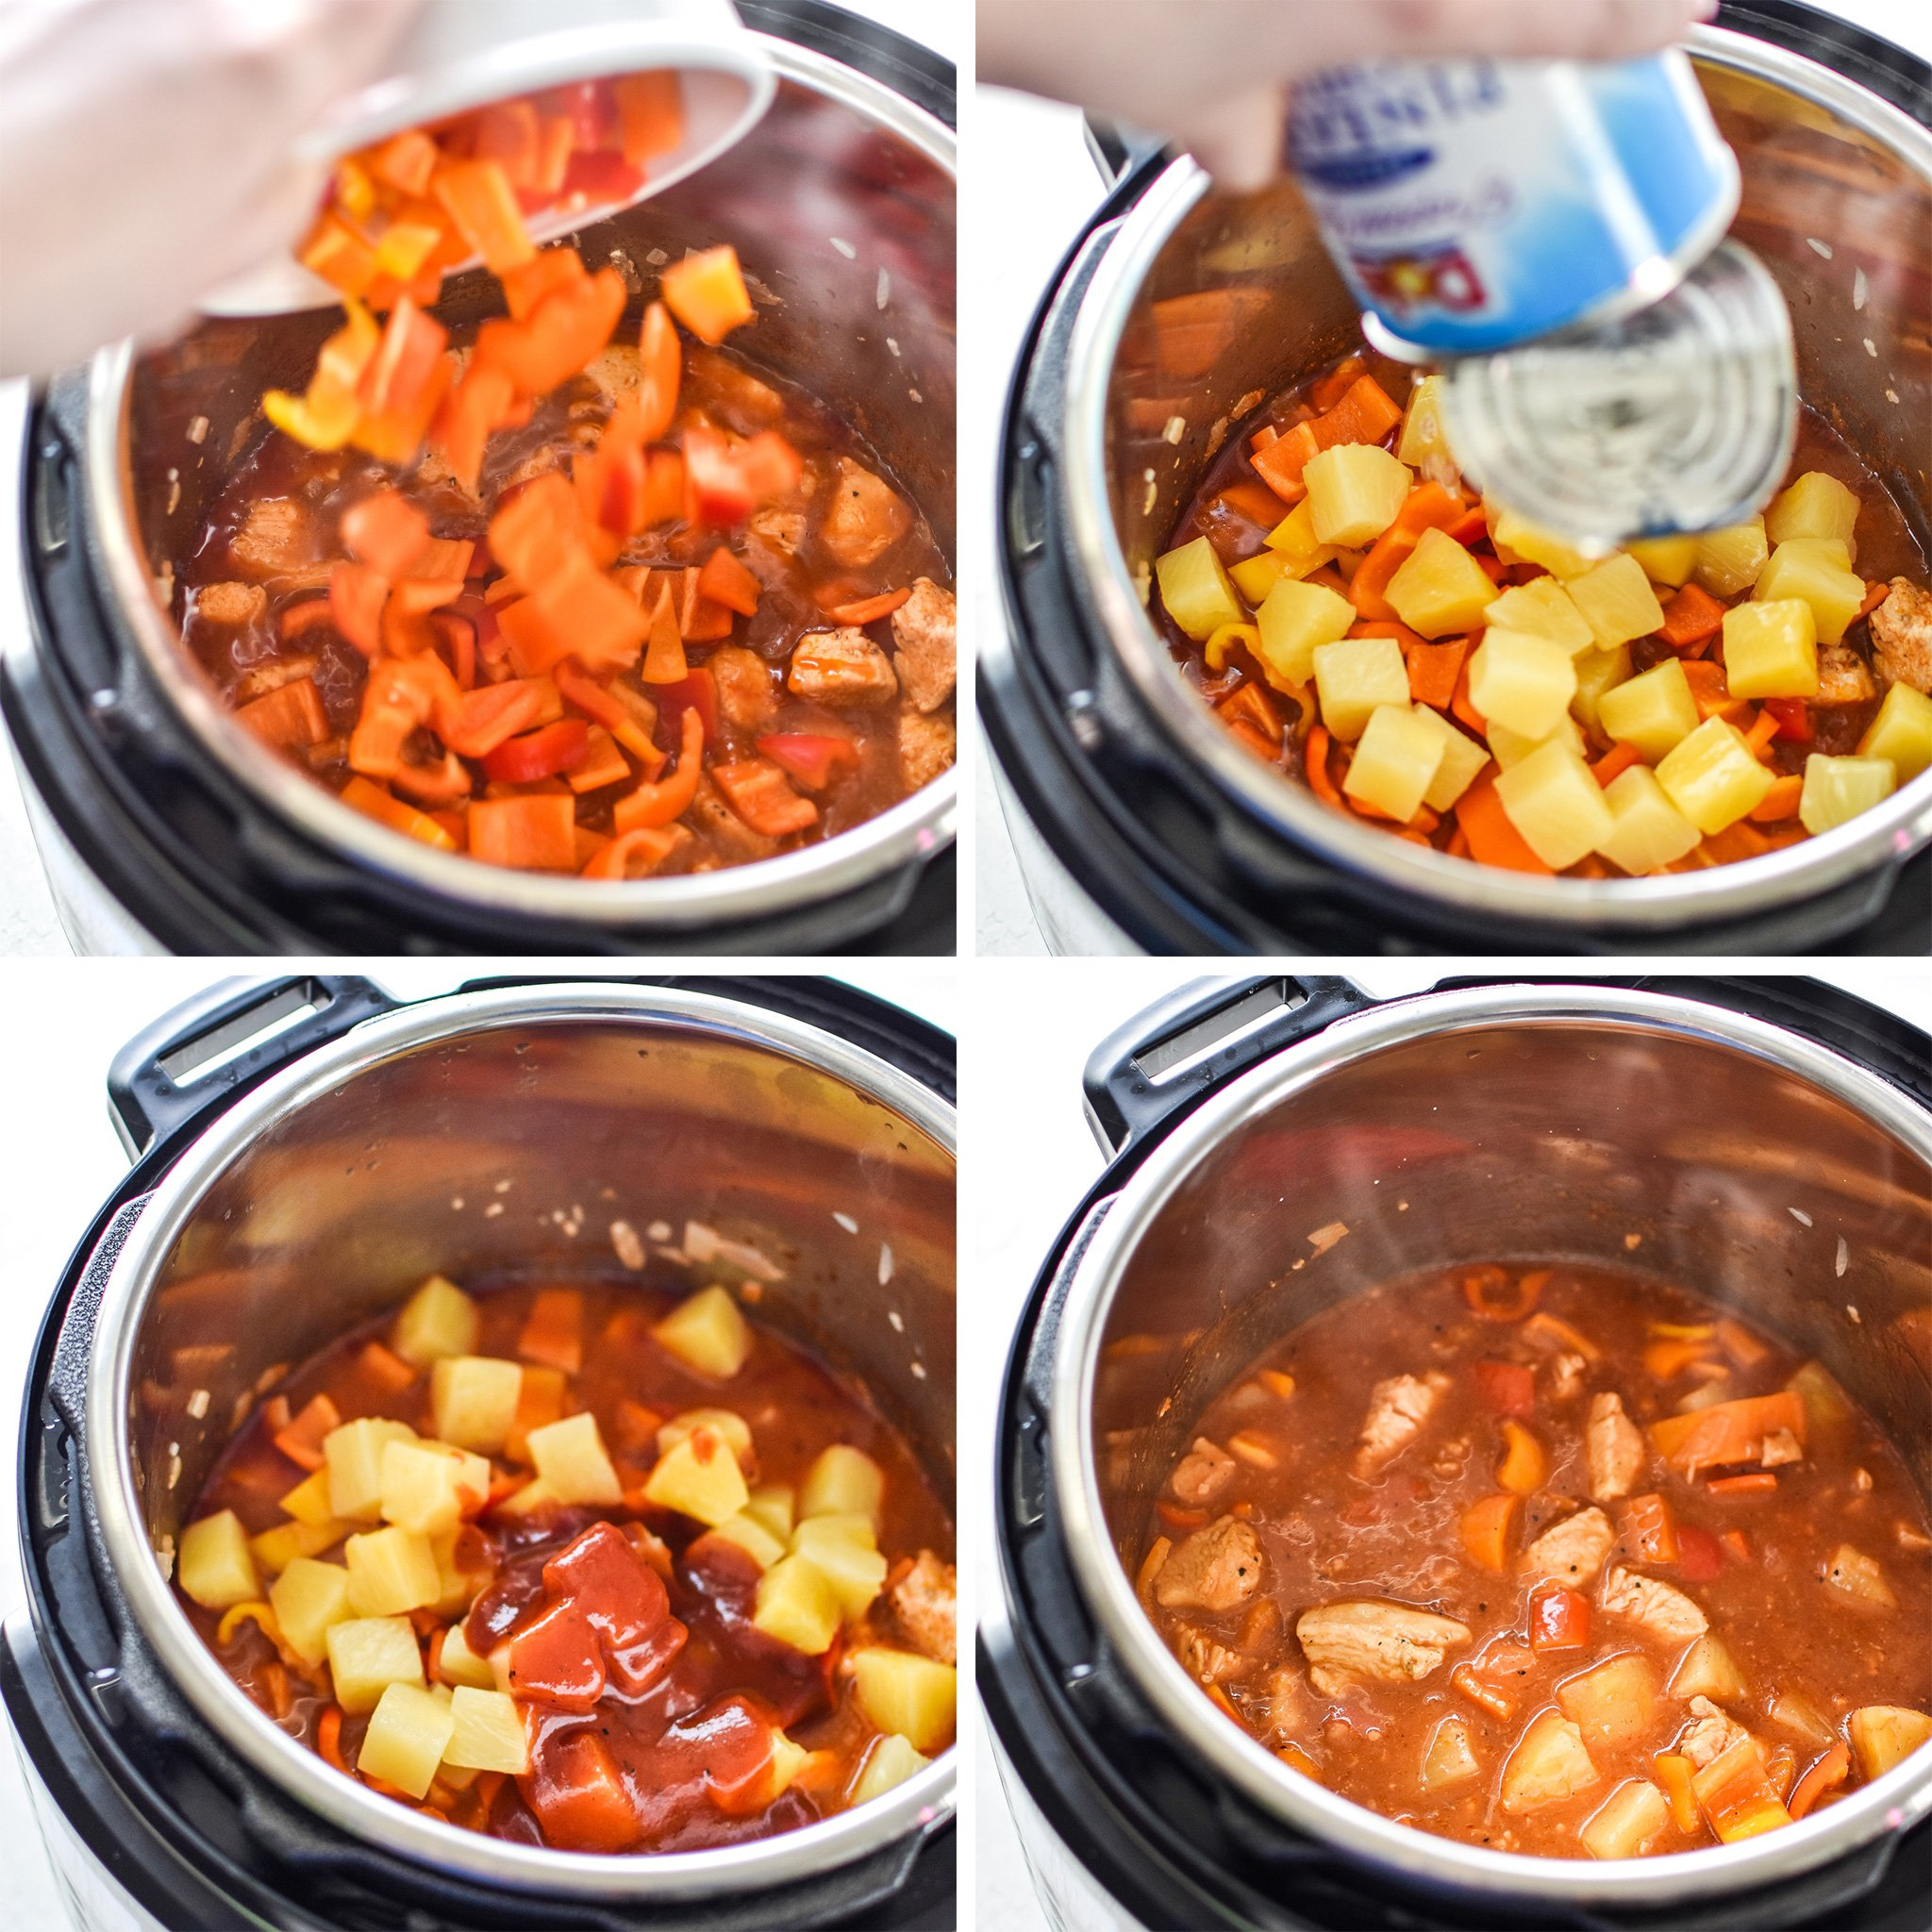 Step by step photos of the Sweet Ginger BBQ Chicken Meal Prep being made in the Instant Pot.